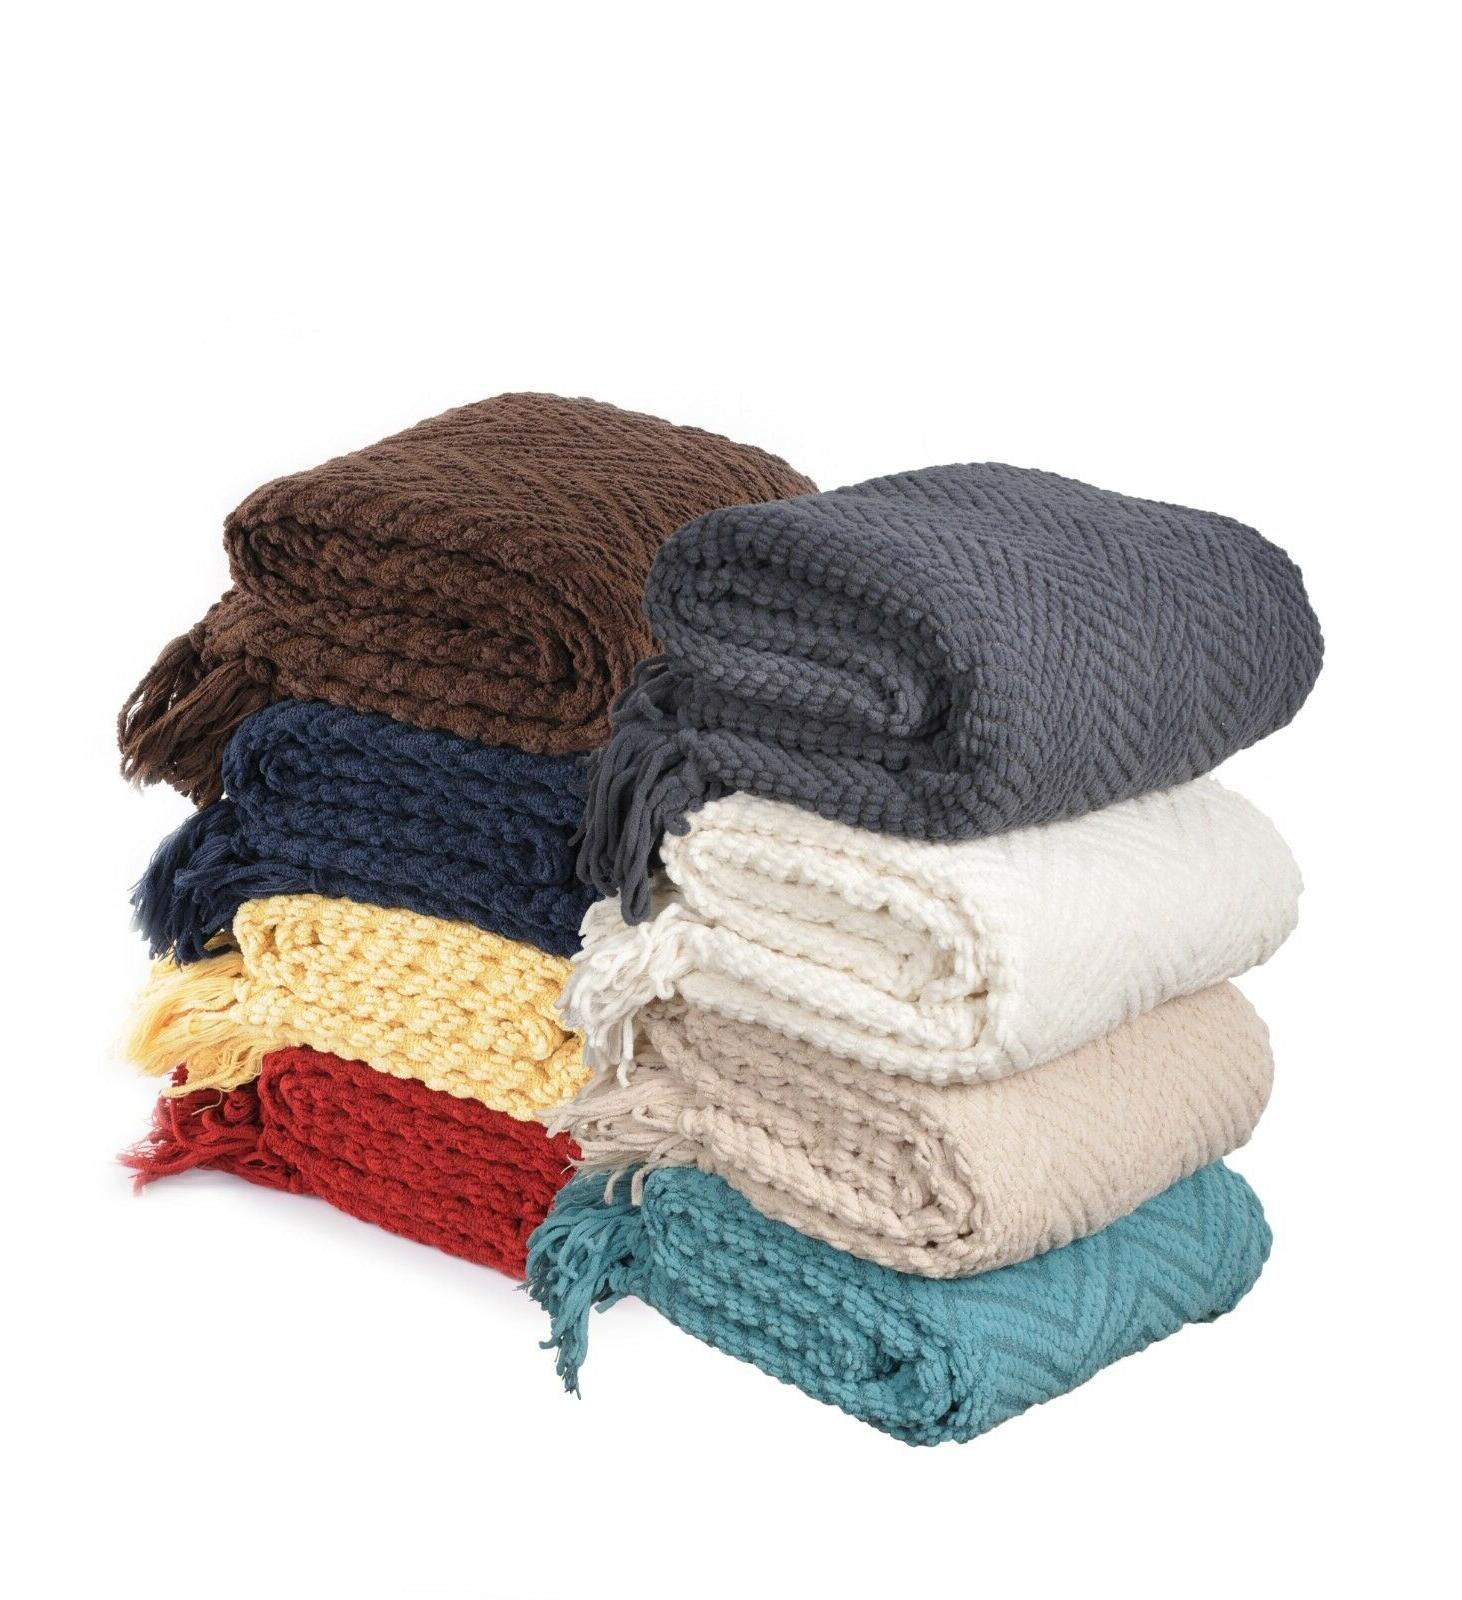 boon knitted tweed throw couch cover blanket